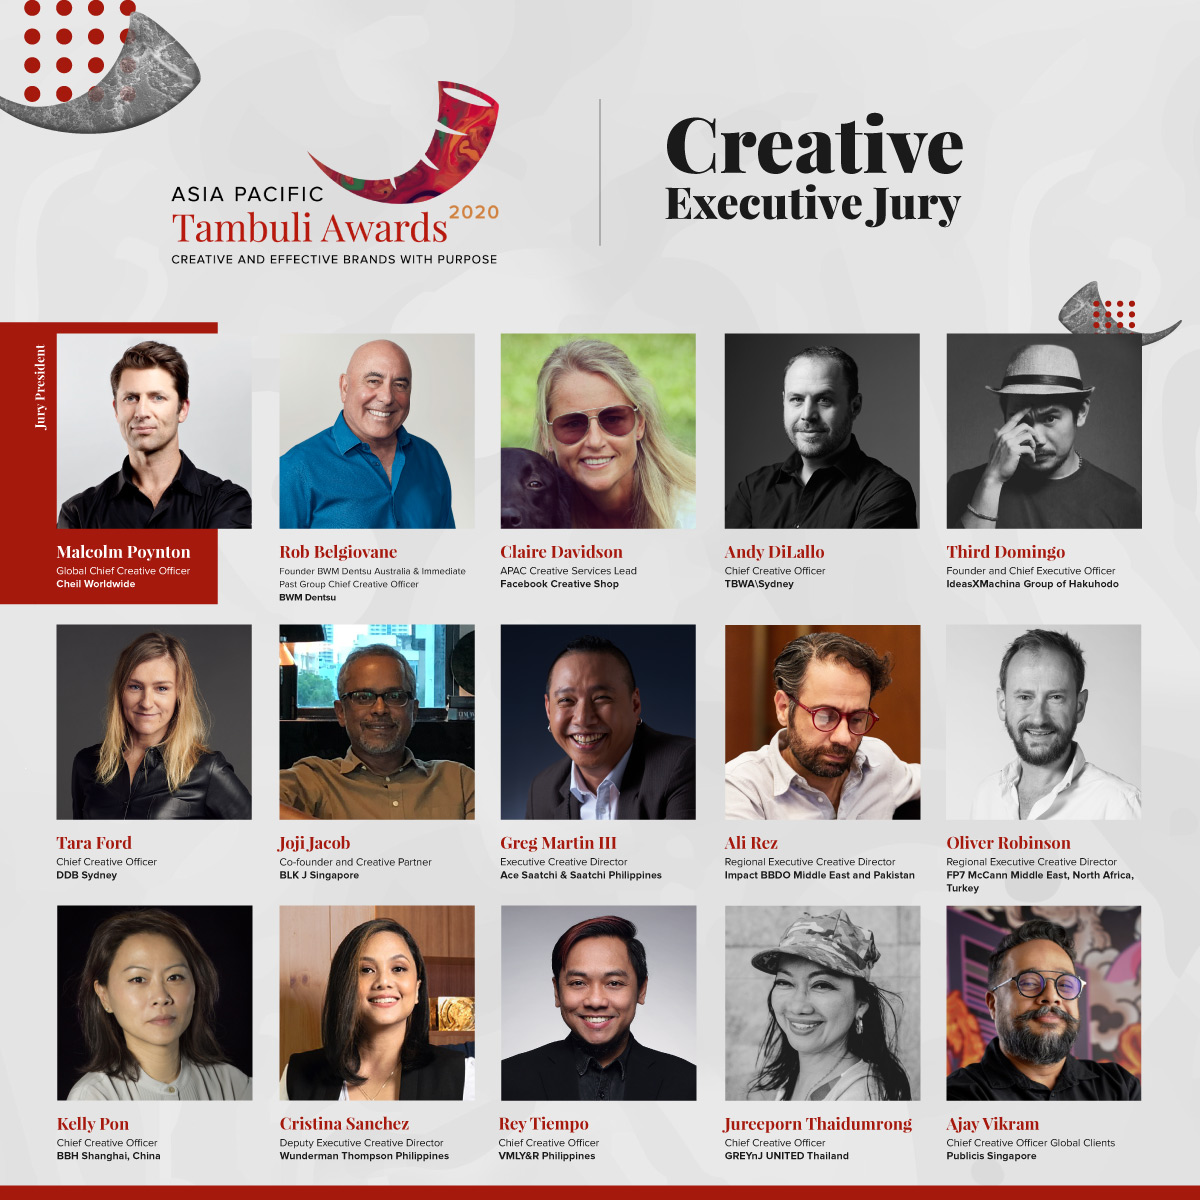 Tara Ford, Andy DiLallo and Rob Belgiovane join Asia Pacific Tambuli Awards Creative jury led by Malcom Poynton